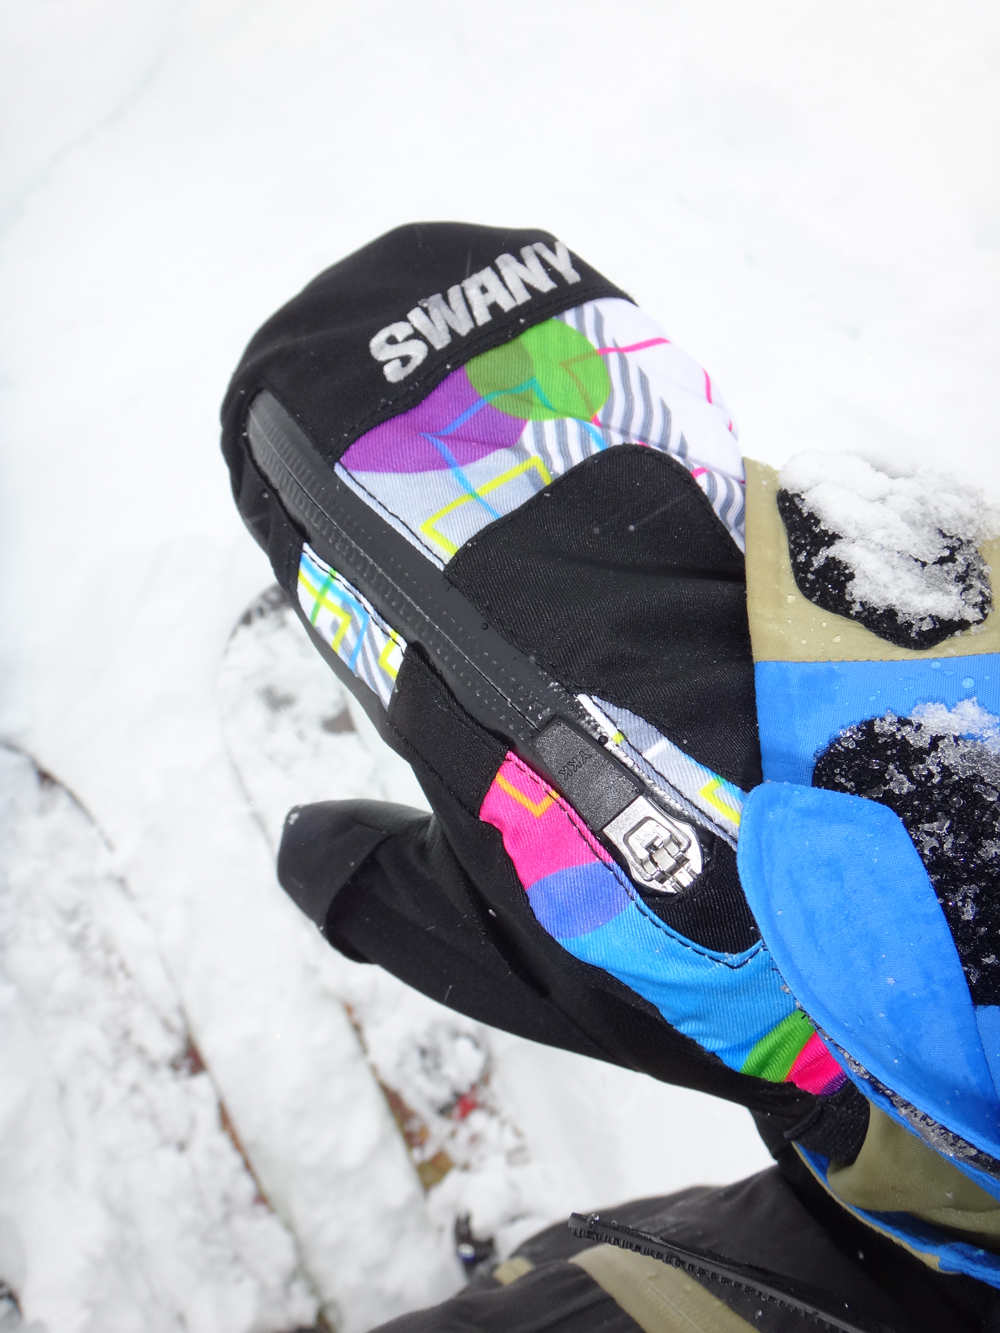 what mittys plex com these always let and dingosean tri src i stbernardsports comfortable god used see black no talk toaster index are s warm cdn mitts mittens have thread gear forum netdna swany your newschoolers they matter